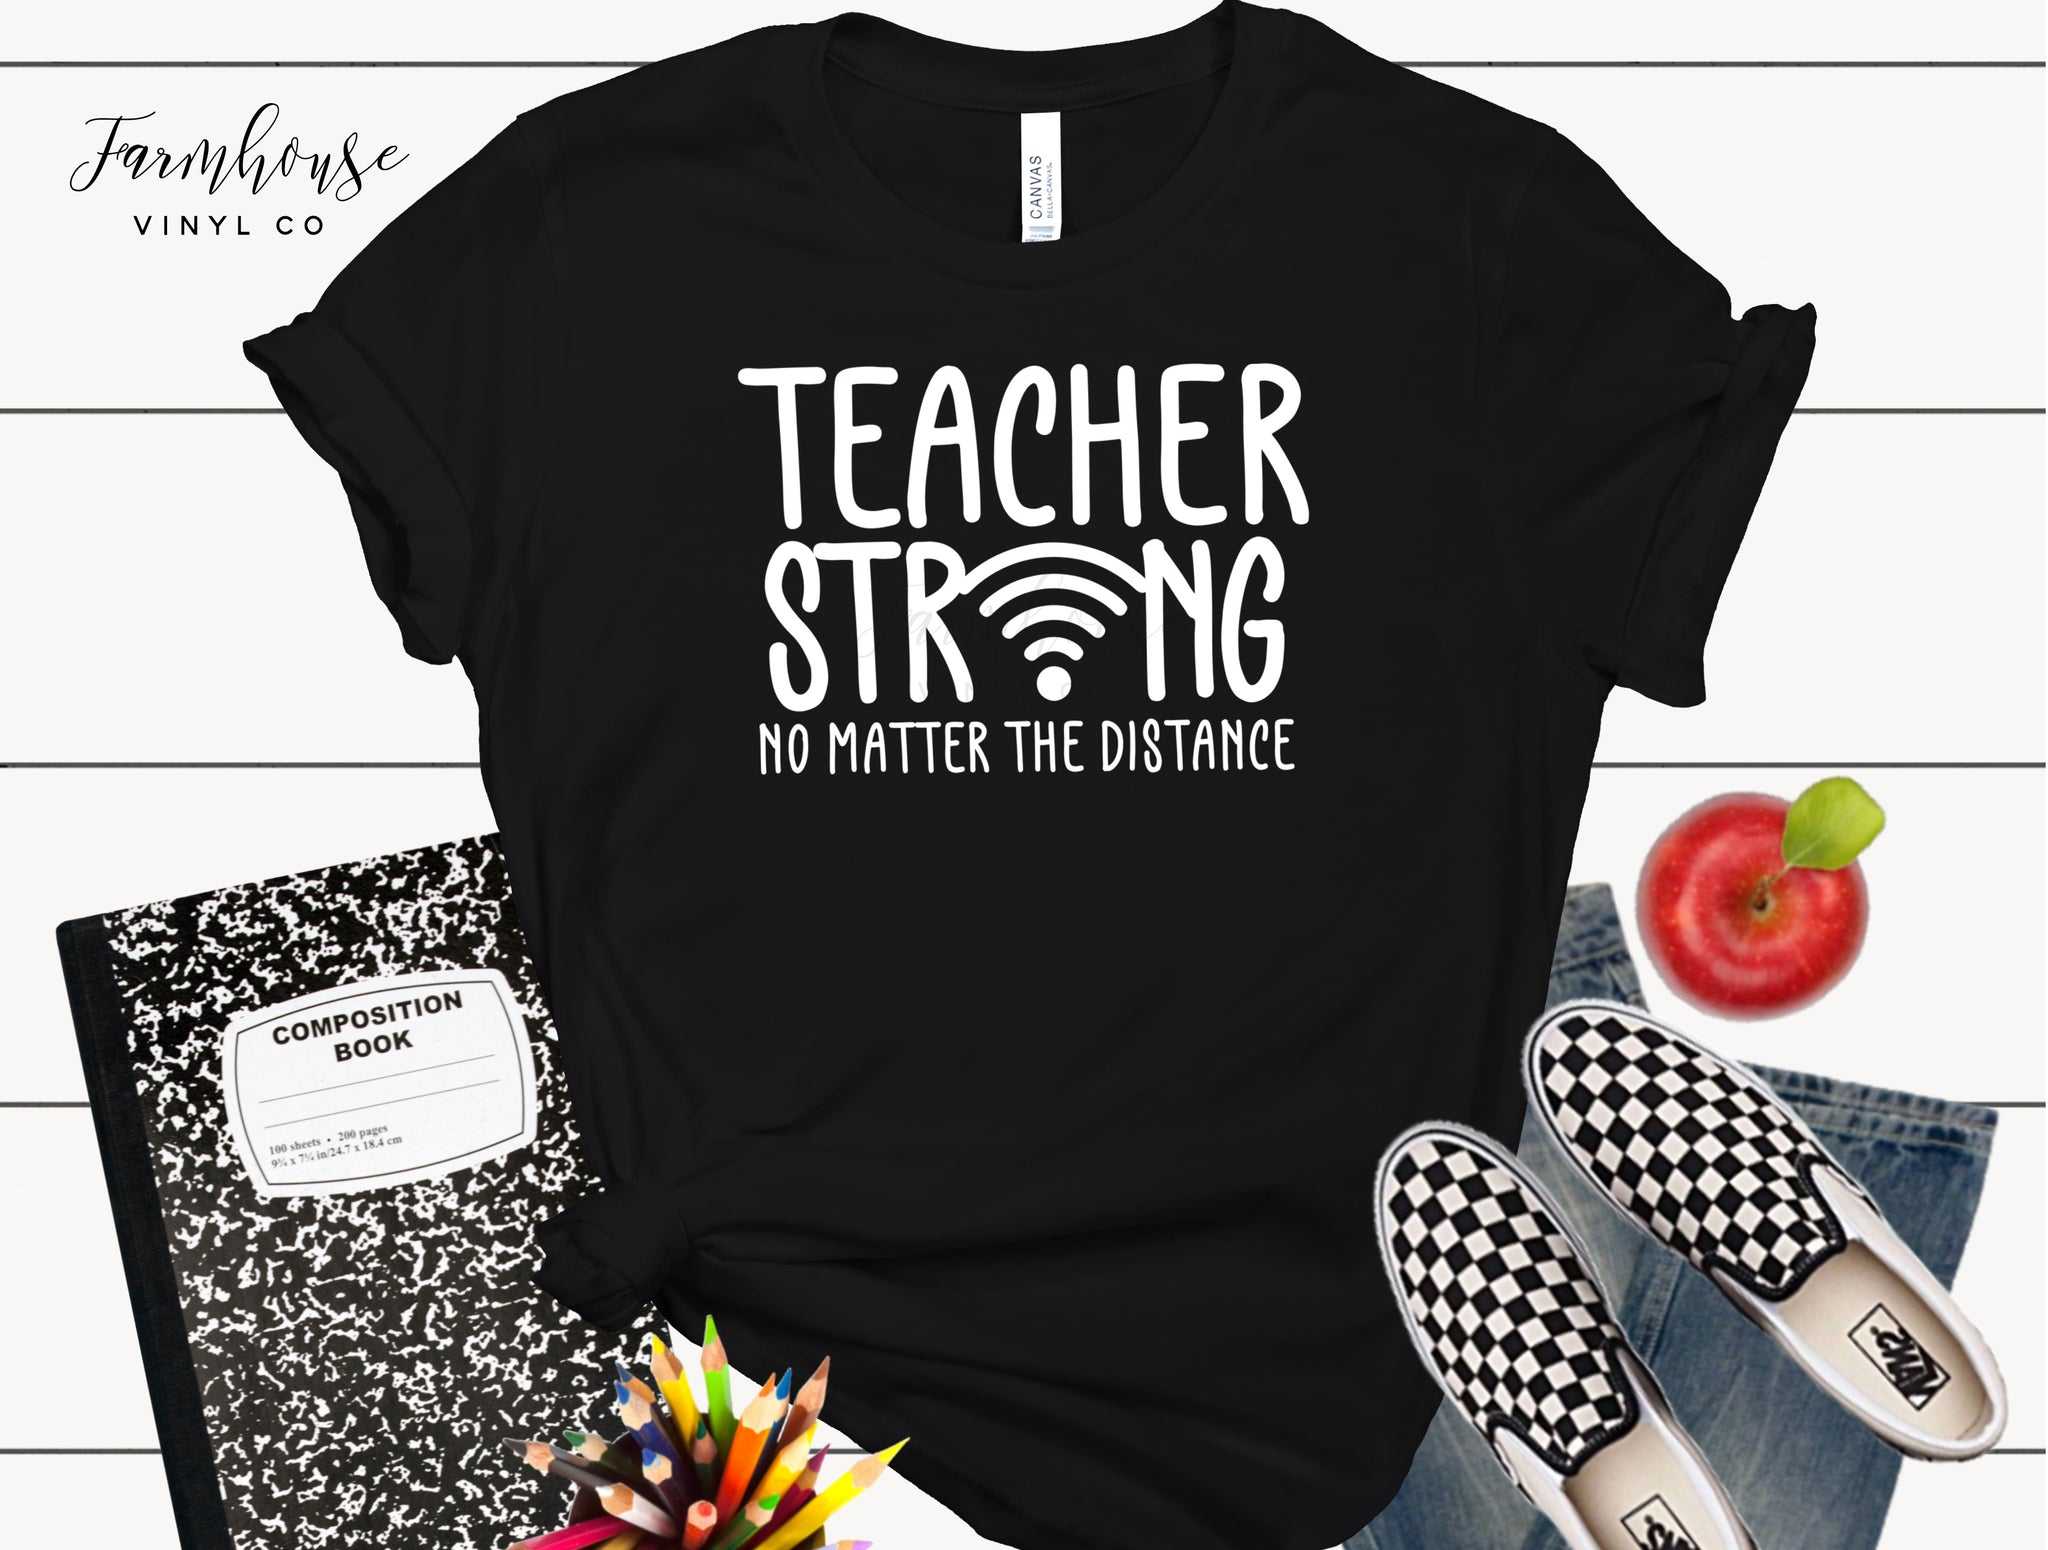 Teacher Strong No Matter the Distance Bella & Canvas Unisex Shirt